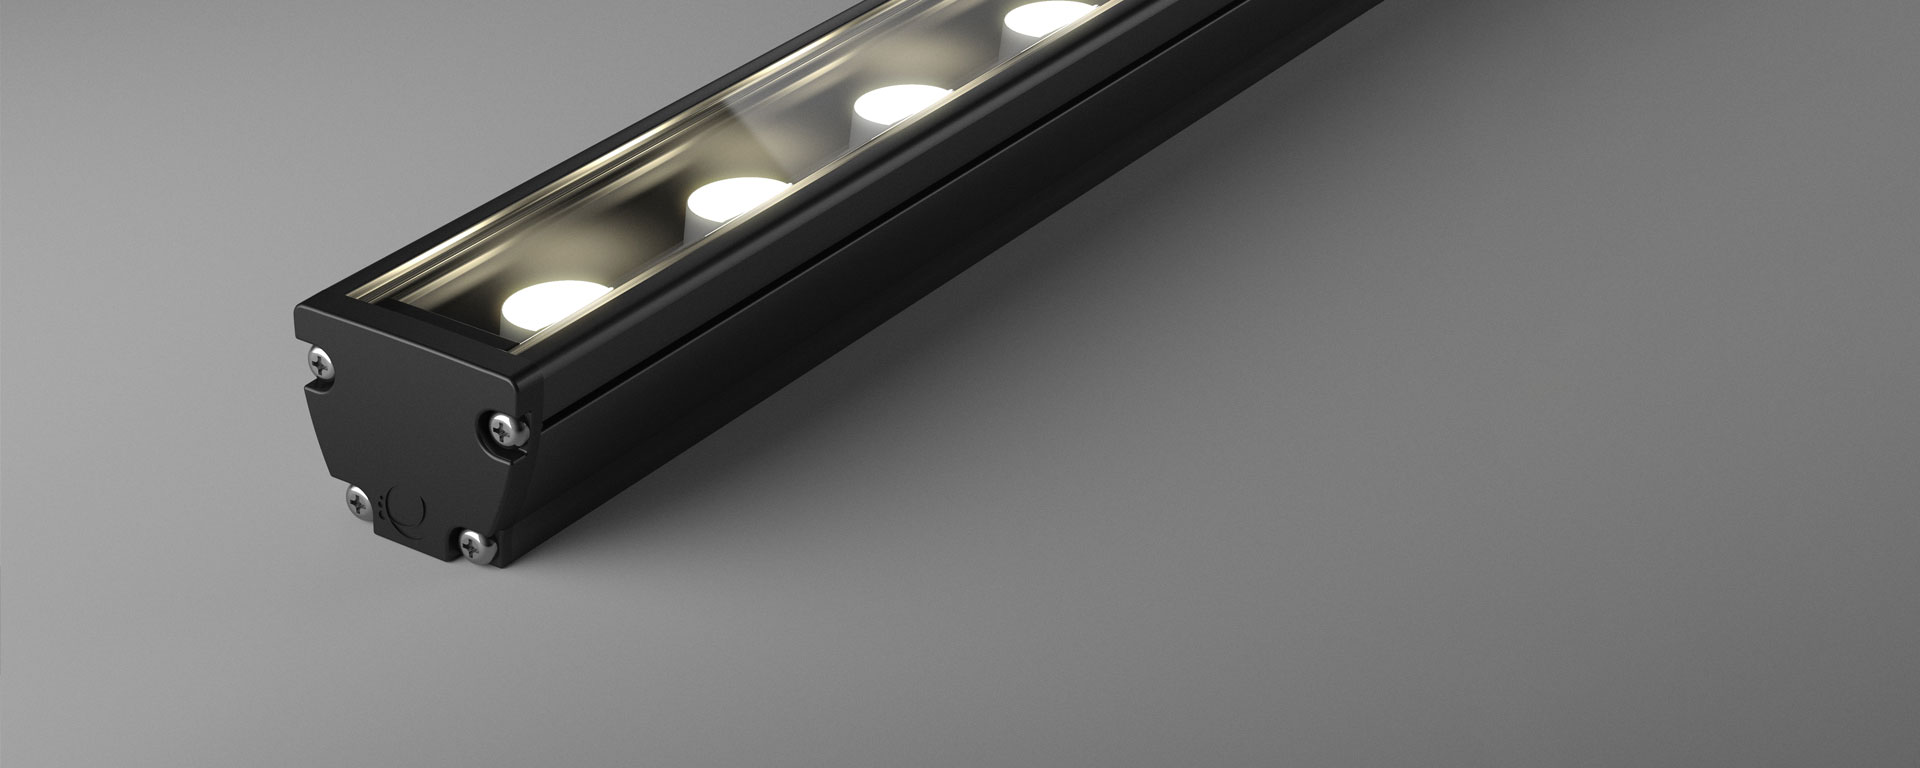 Max Mini IP utilises Coolon's encapsulation technology and signature build quality to deliver an outdoor luminaire that's uniquely resilient. IP66, IK08, shock and abrasion resistance and thermal protection